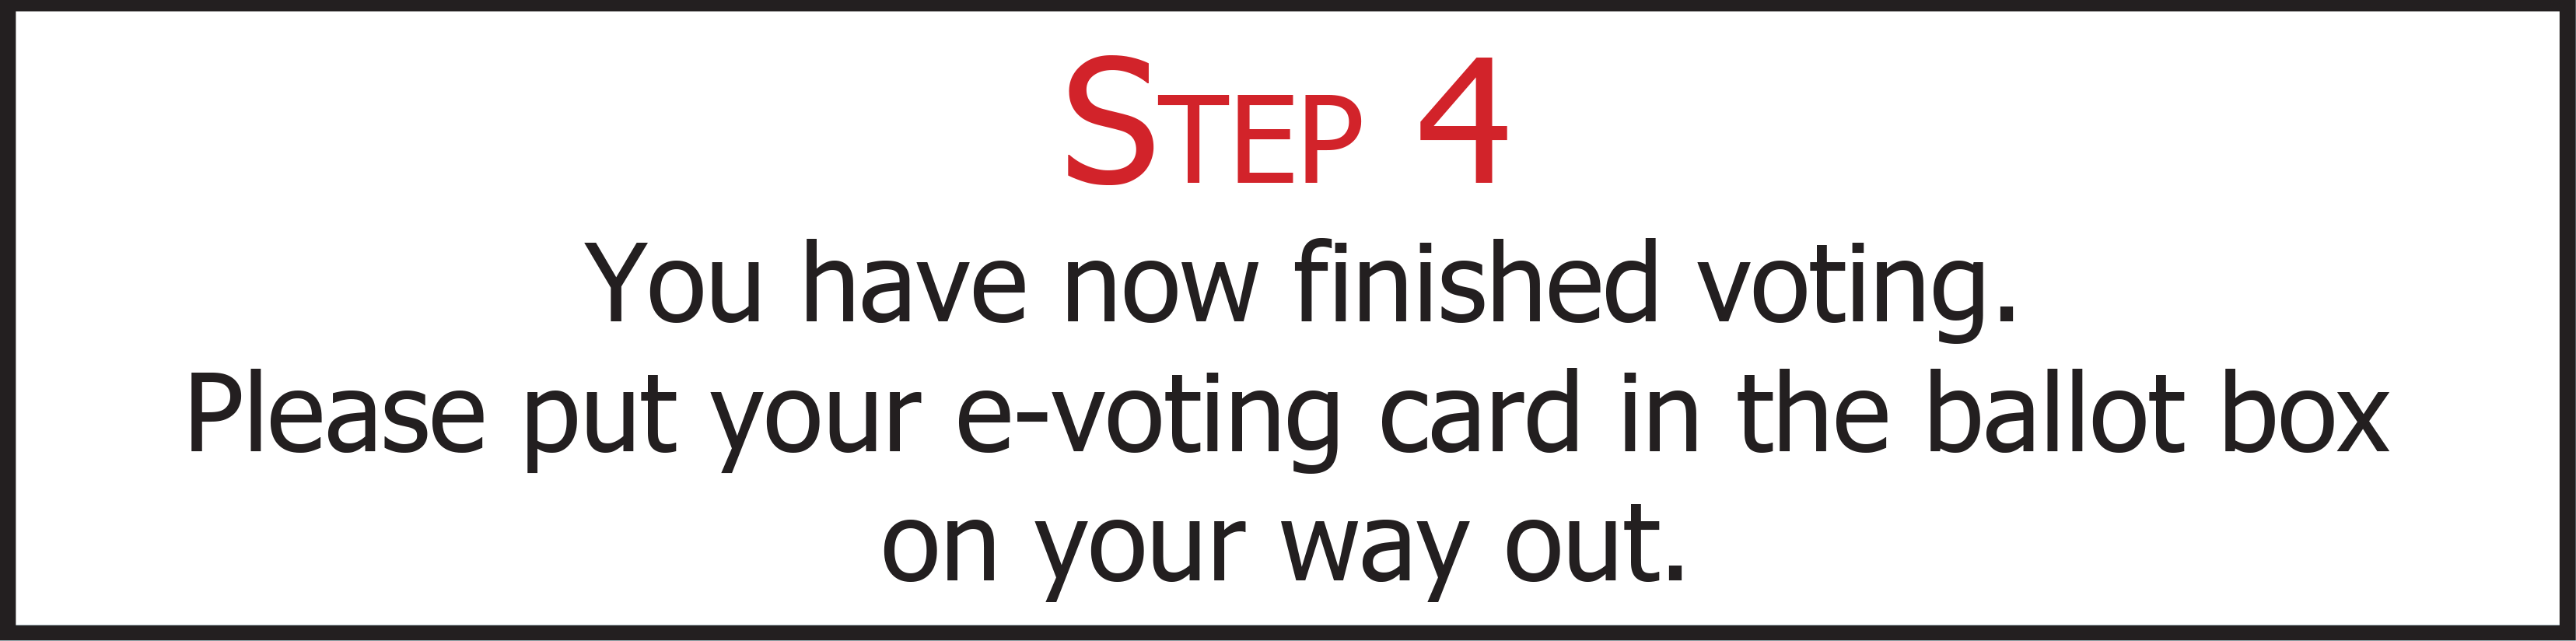 e-voting step 4